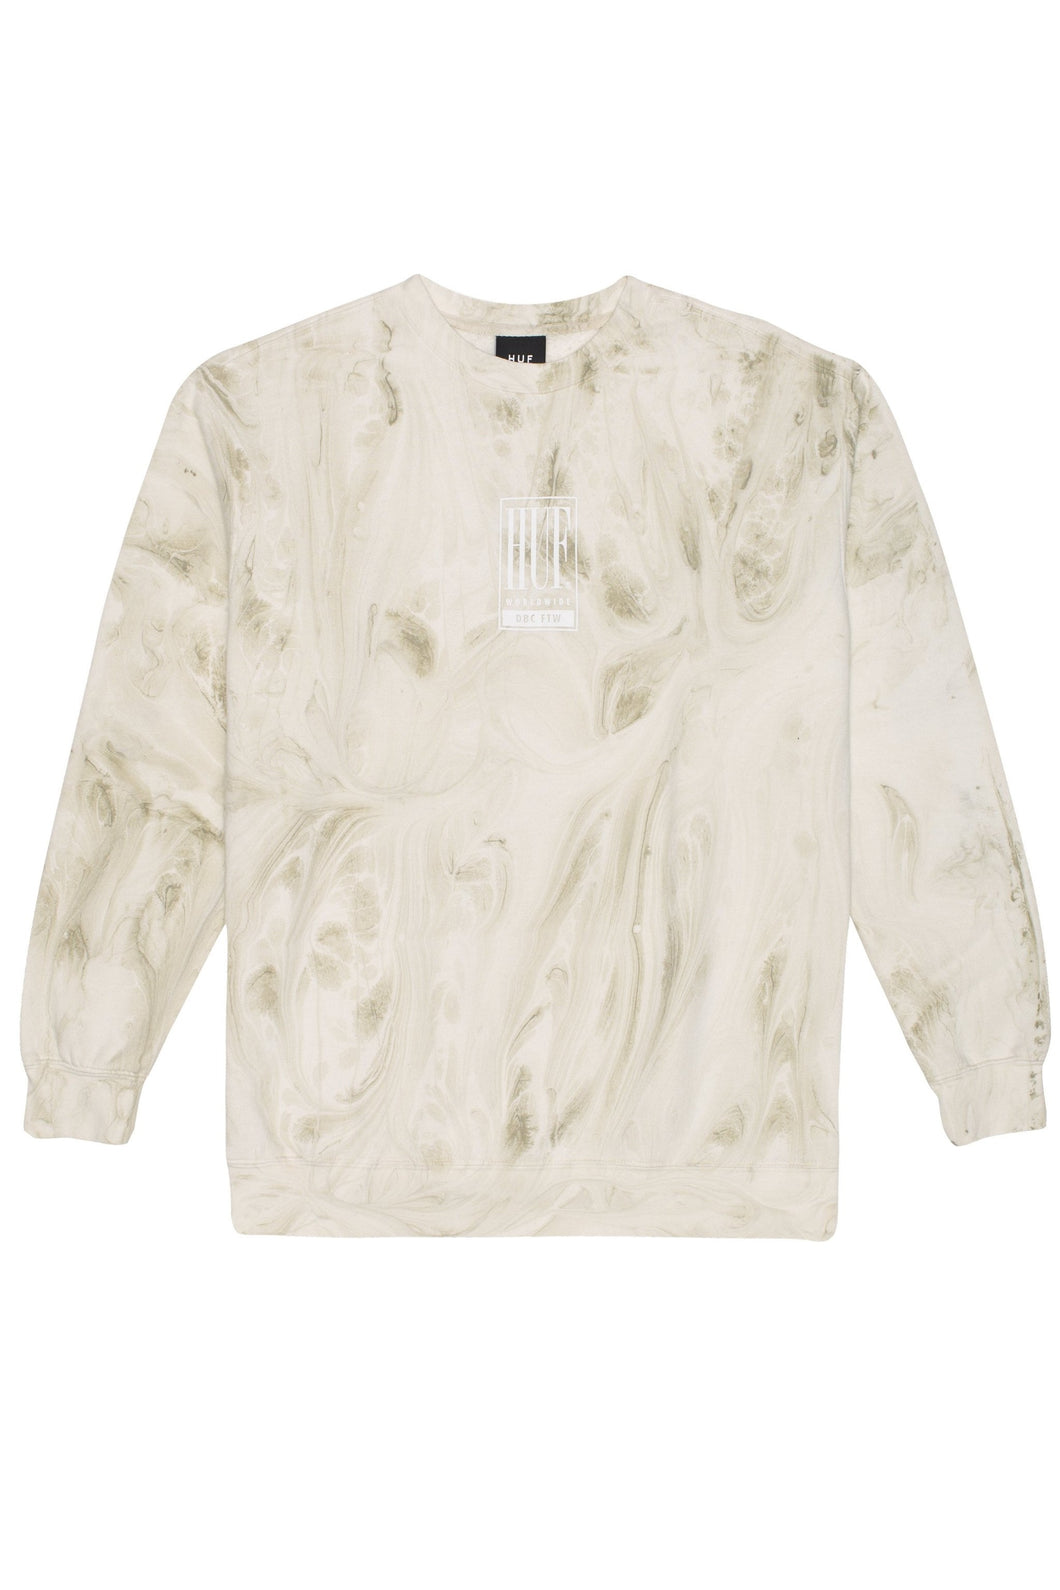 HUF Sweatshirt Crew Neck Elias Unbleached - Circle Collective